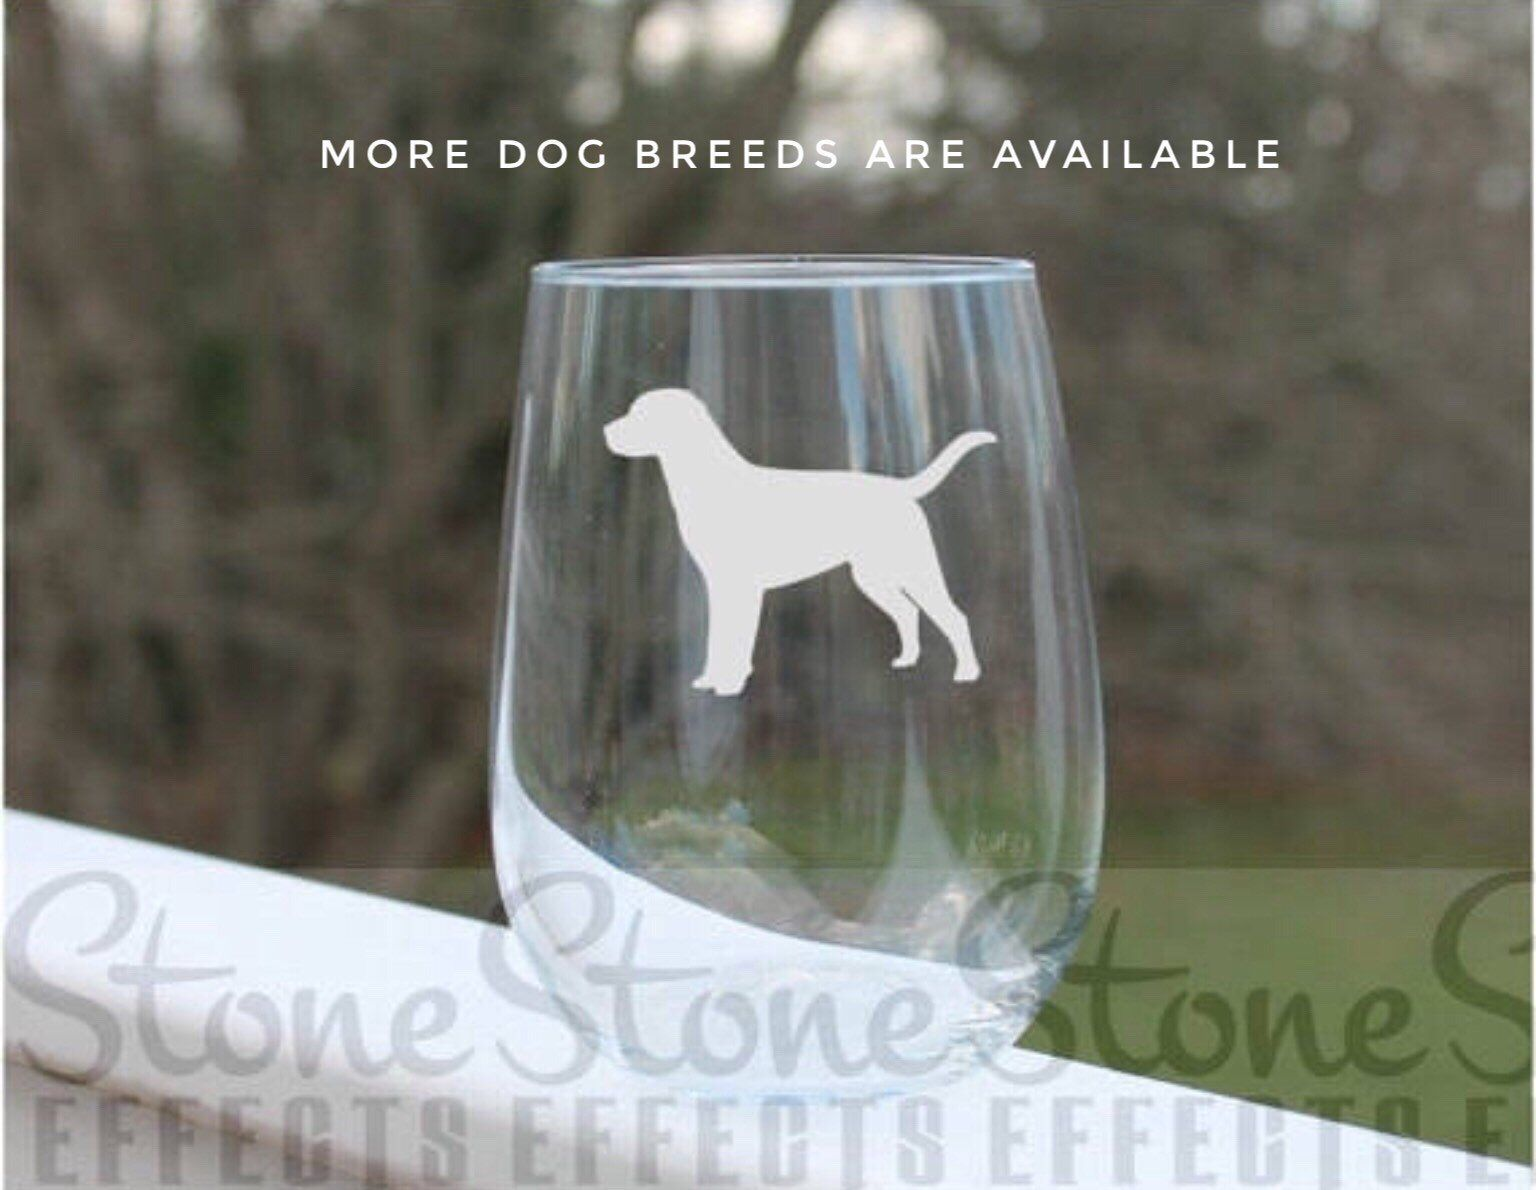 bf2f2adfcf1 Etched wine glasses, stemless wine glasses, dog wine glass, engraved wine  glasses, dog breeds